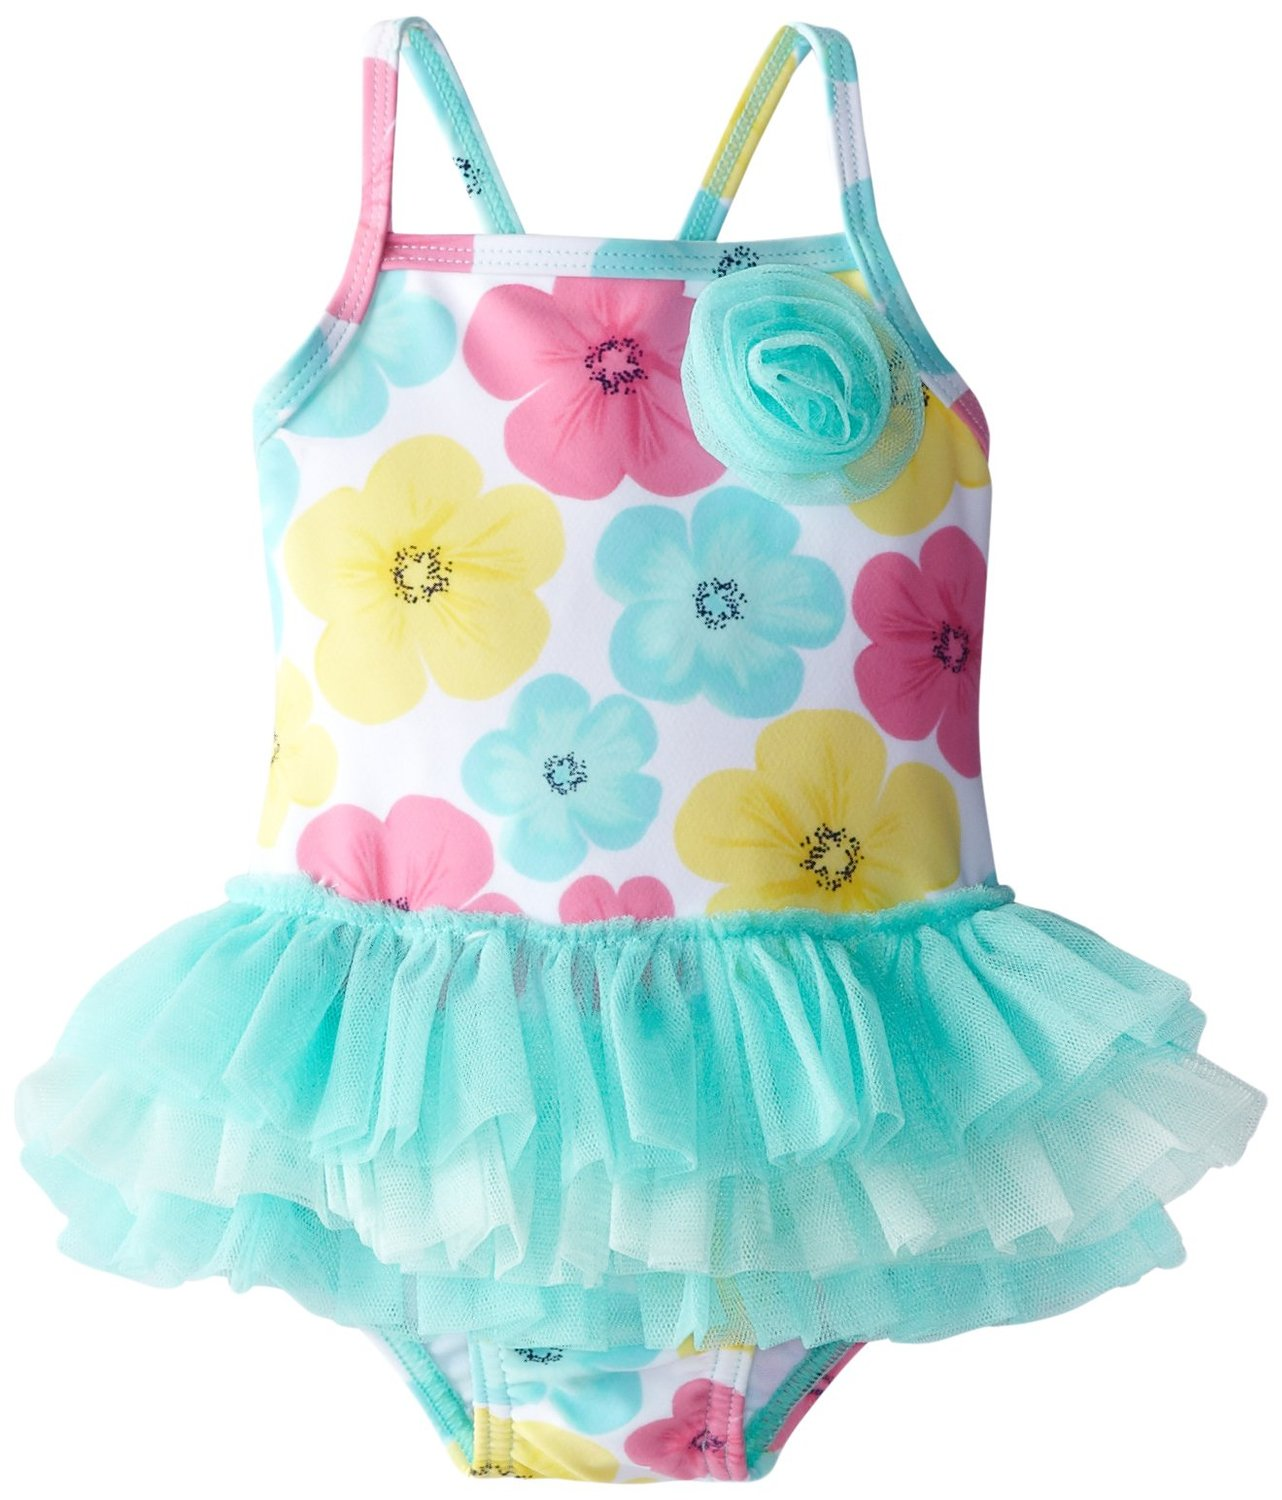 Baby girl swimsuit with tutu-4469